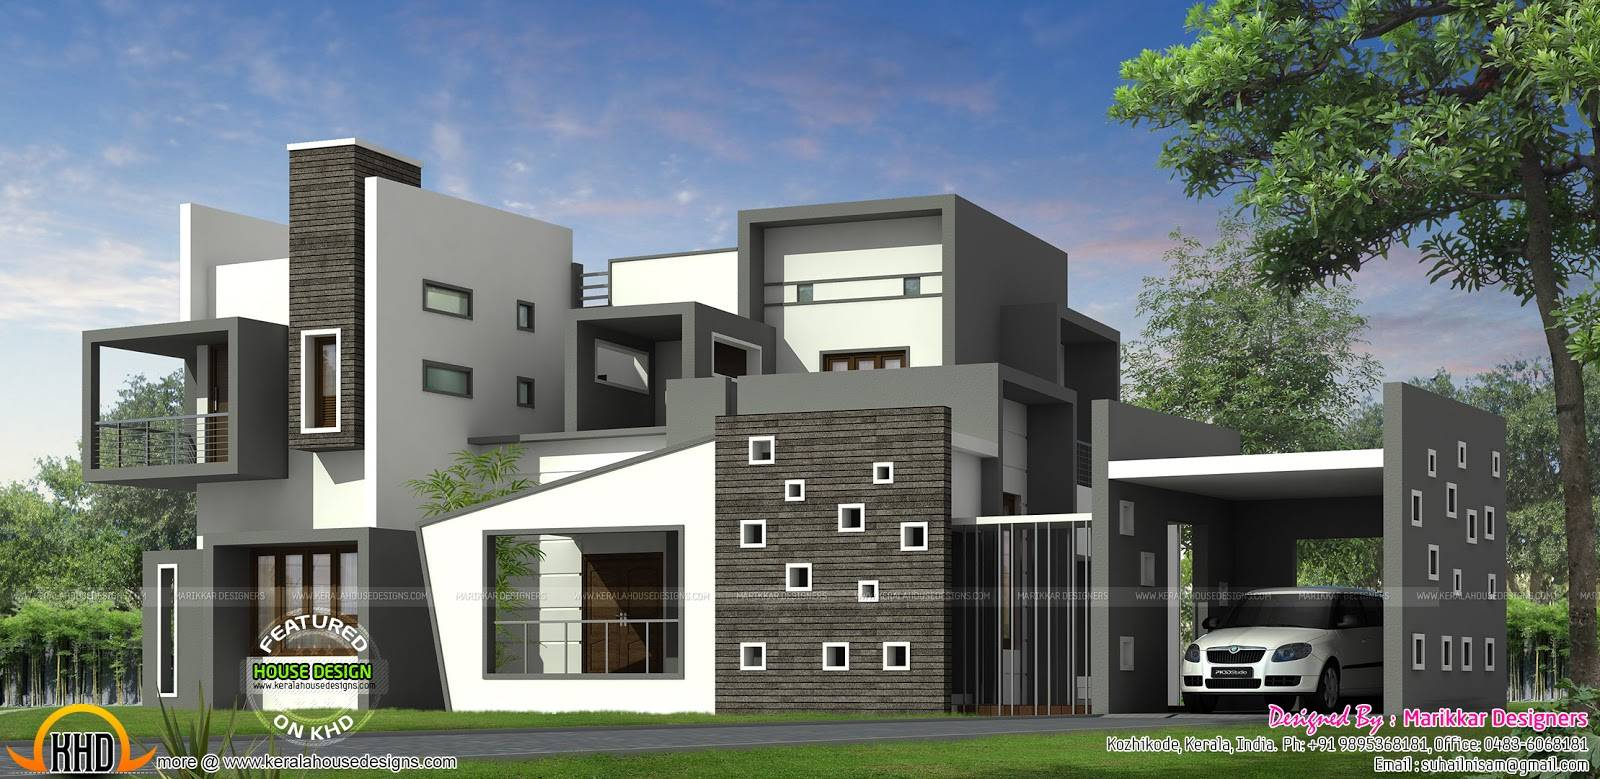 House Kerala Style Contemporary Plans Modern House Plans 126482